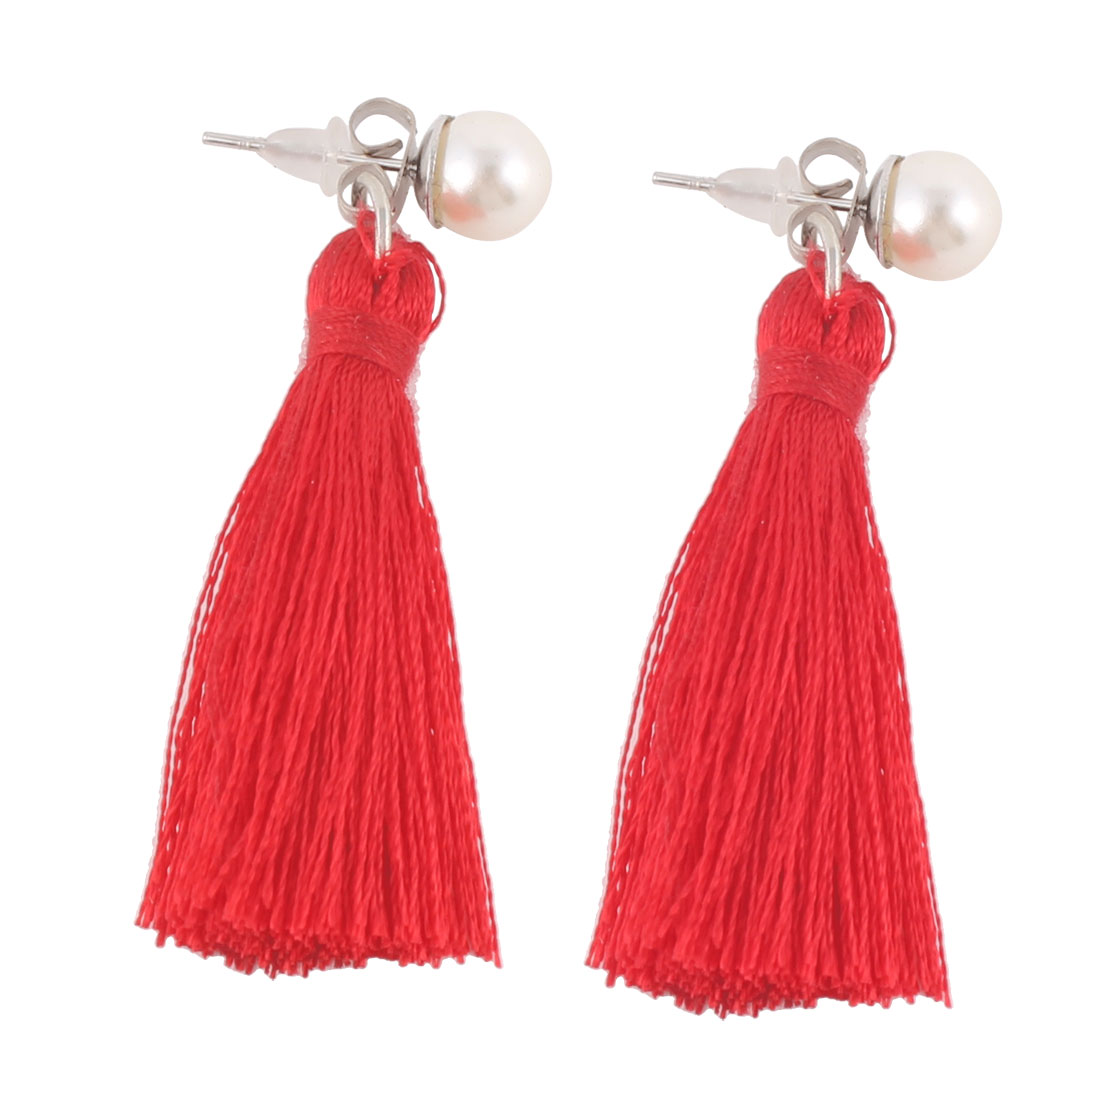 Ladies Metal Hook Polyester Pearl Decor Earbobs Tassel Earrings Red Pair